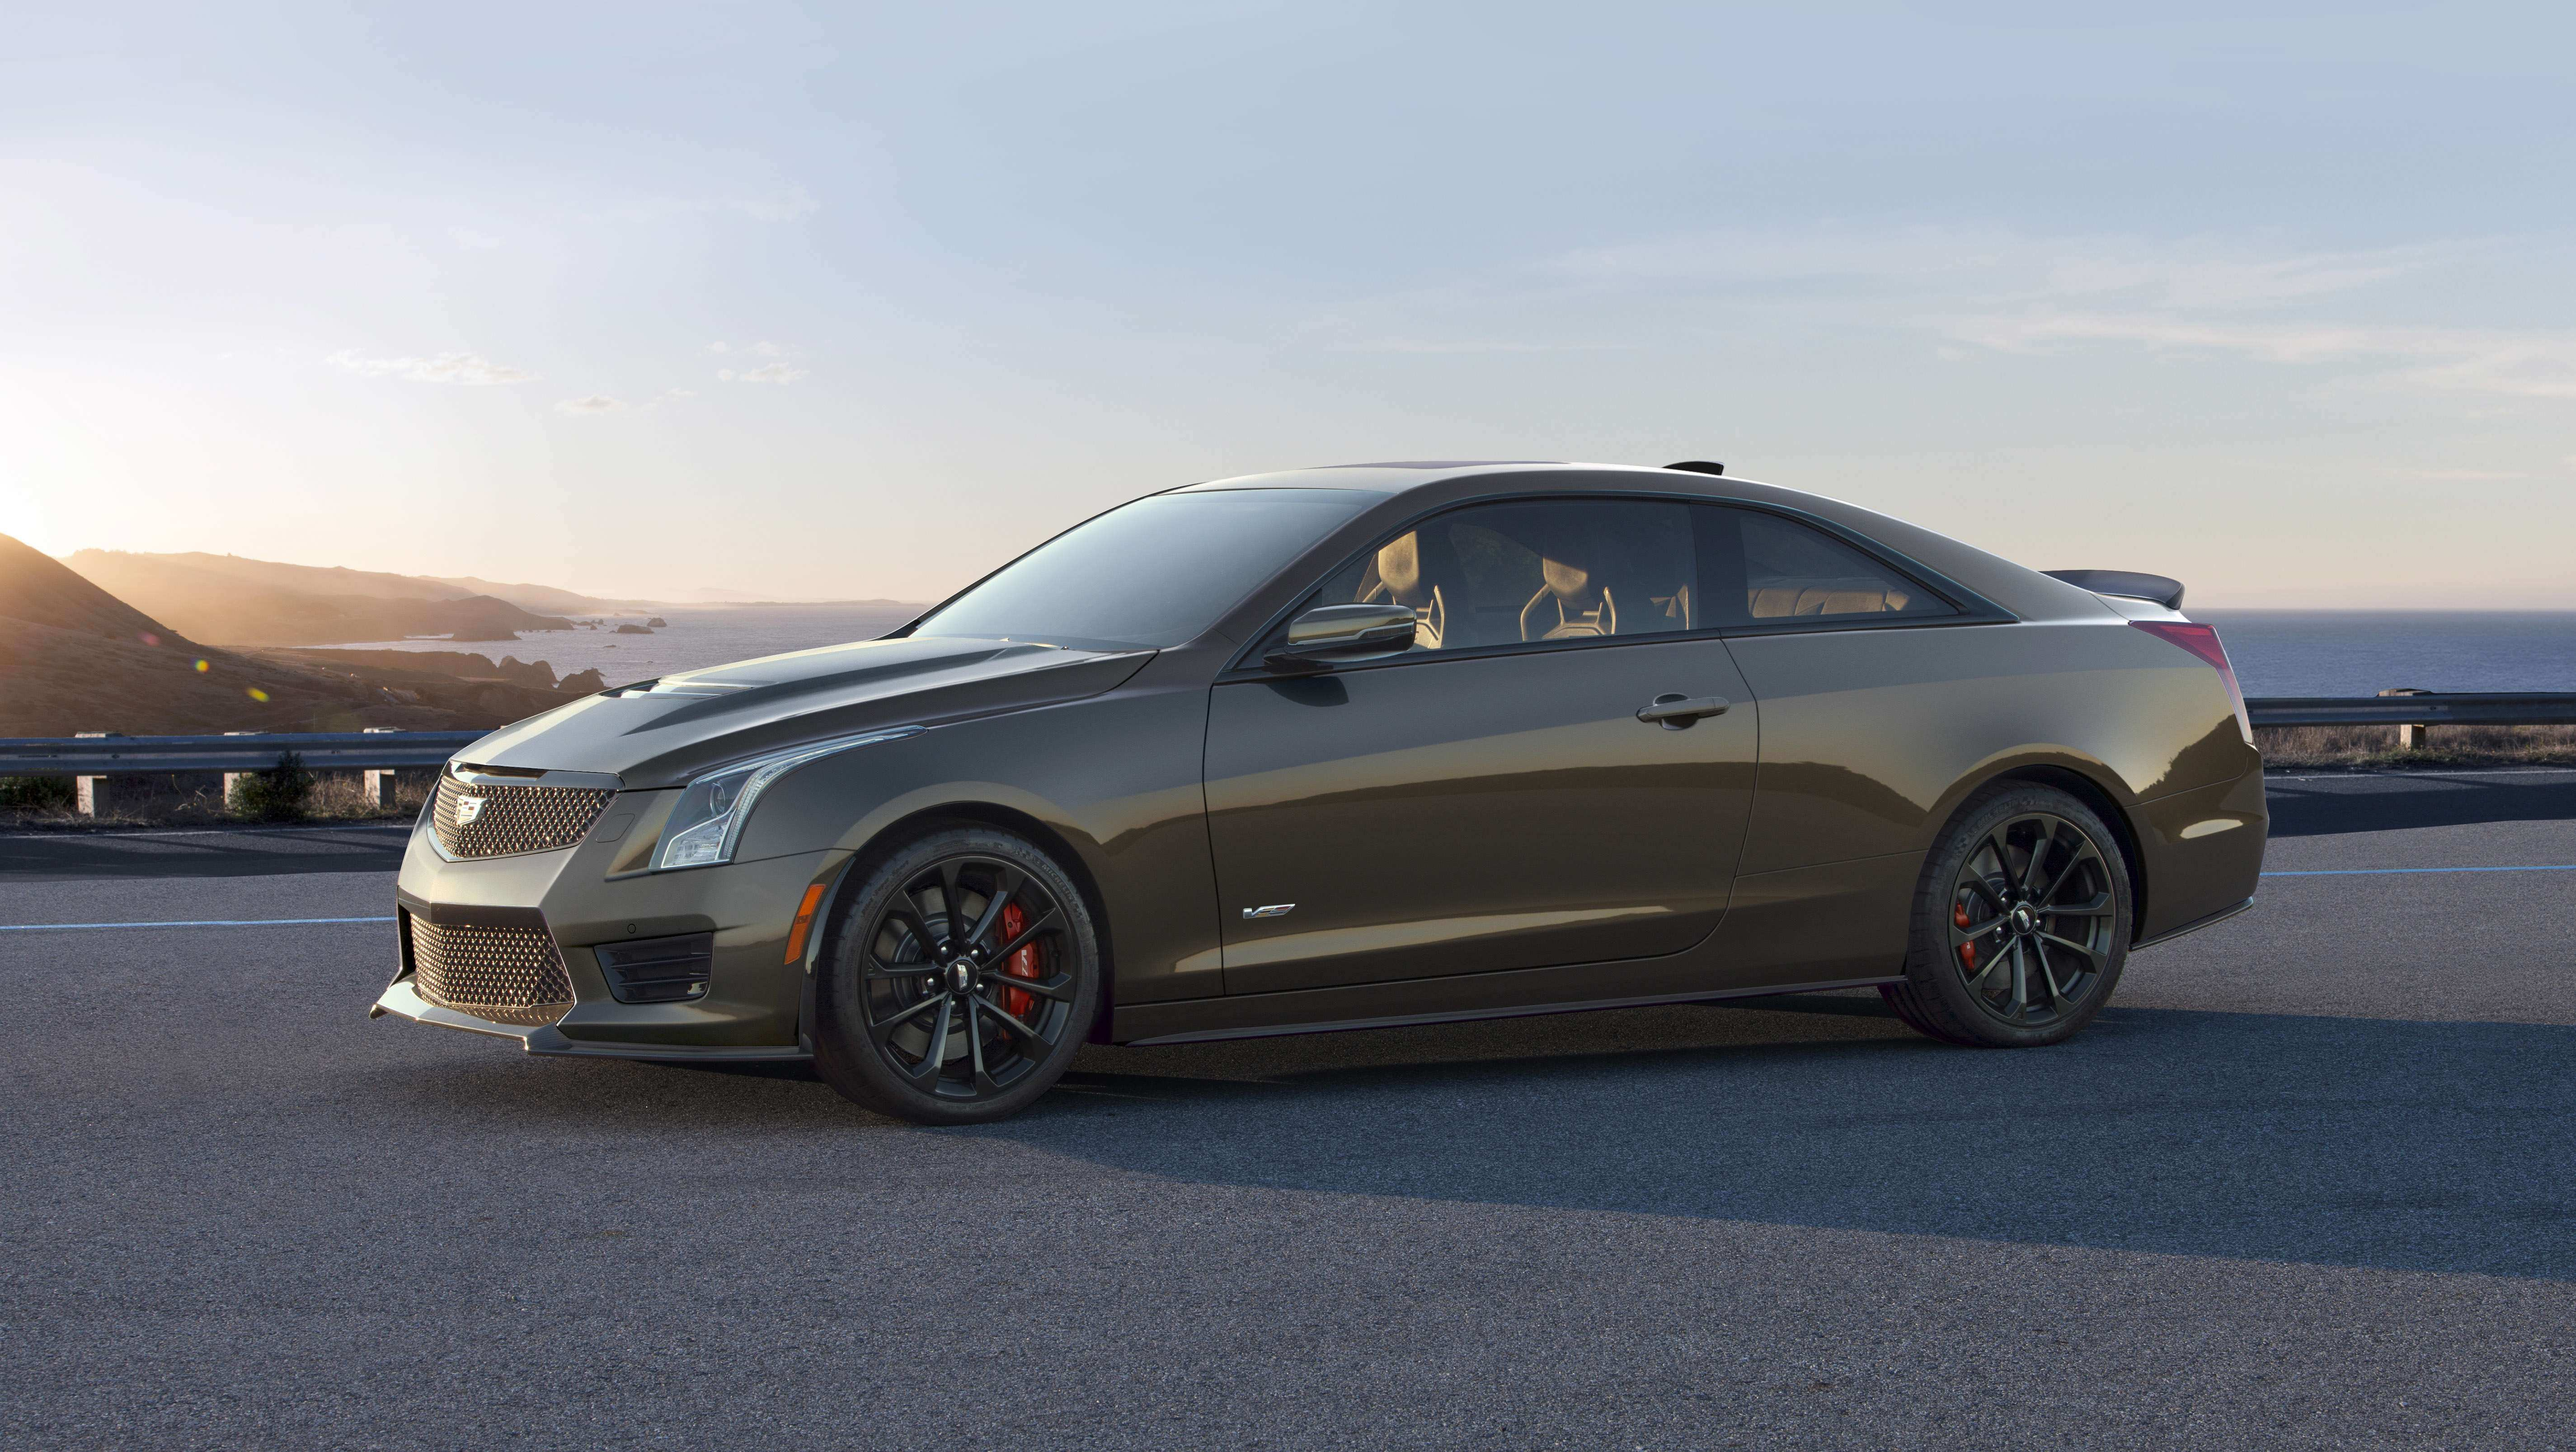 56 Concept of 2019 Cts V Research New for 2019 Cts V